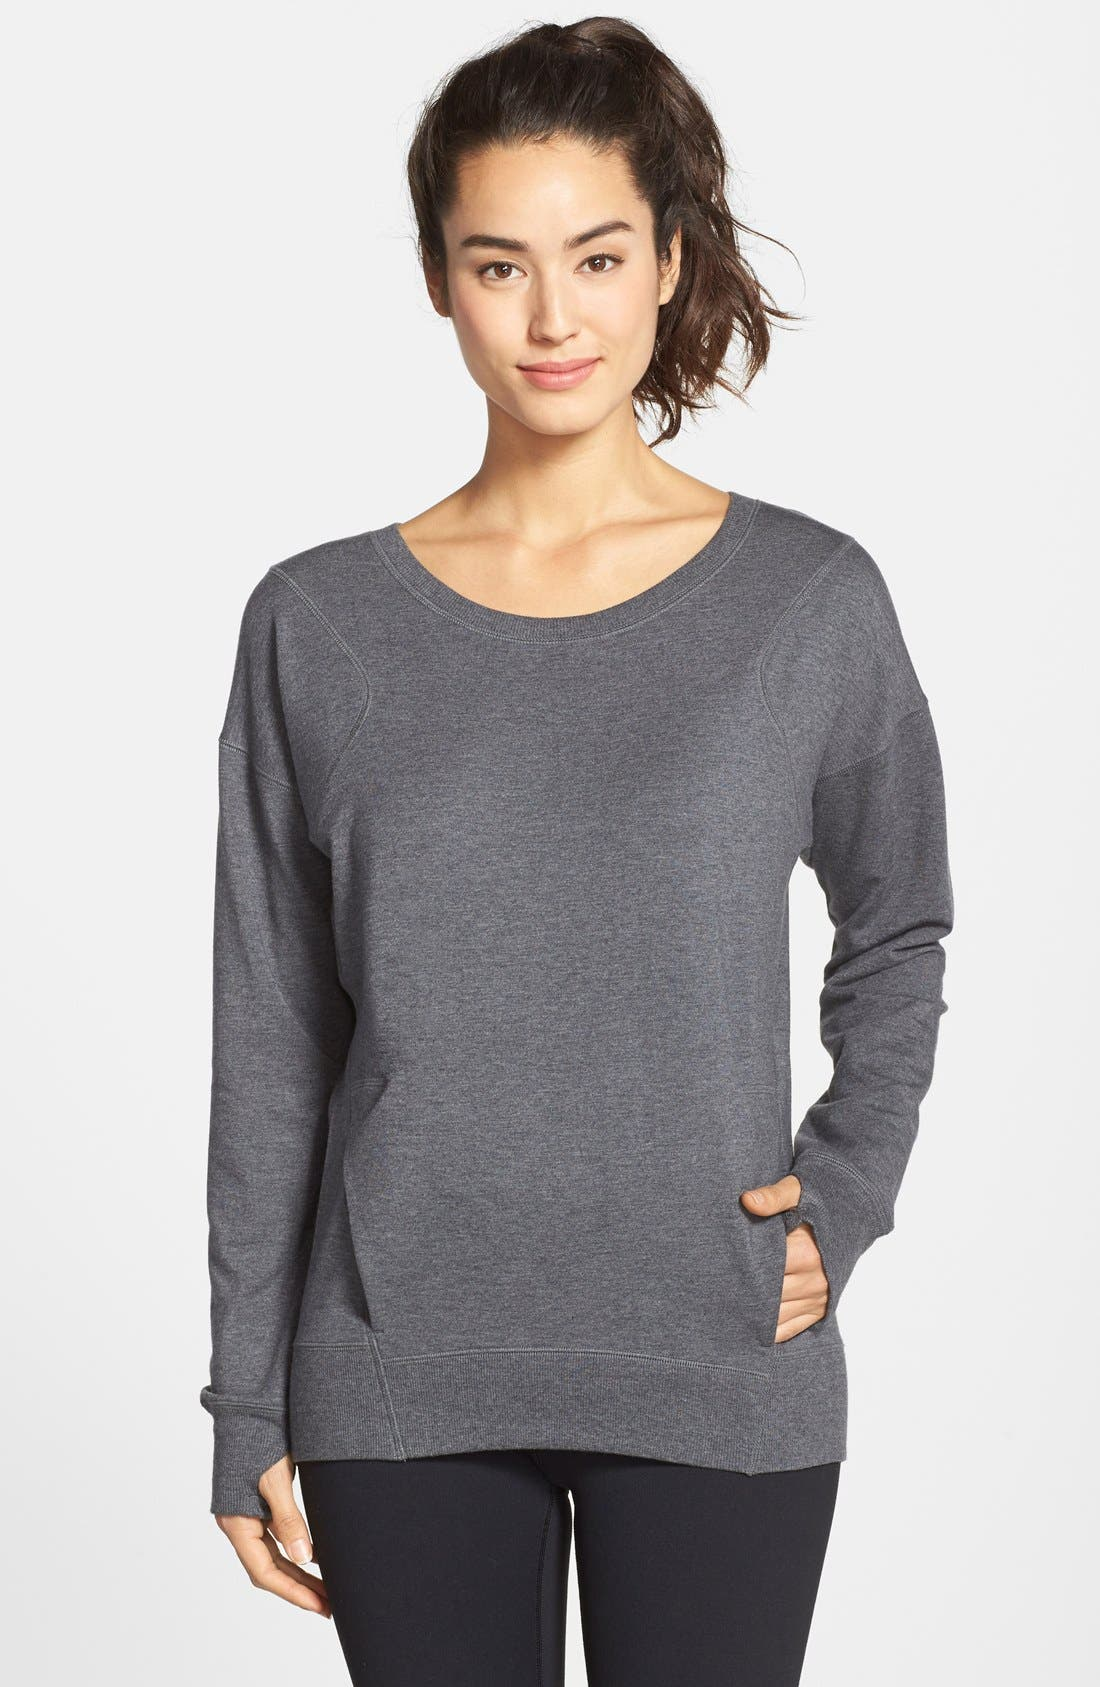 'Amore' Pullover,                         Main,                         color, Grey Charcoal Heather